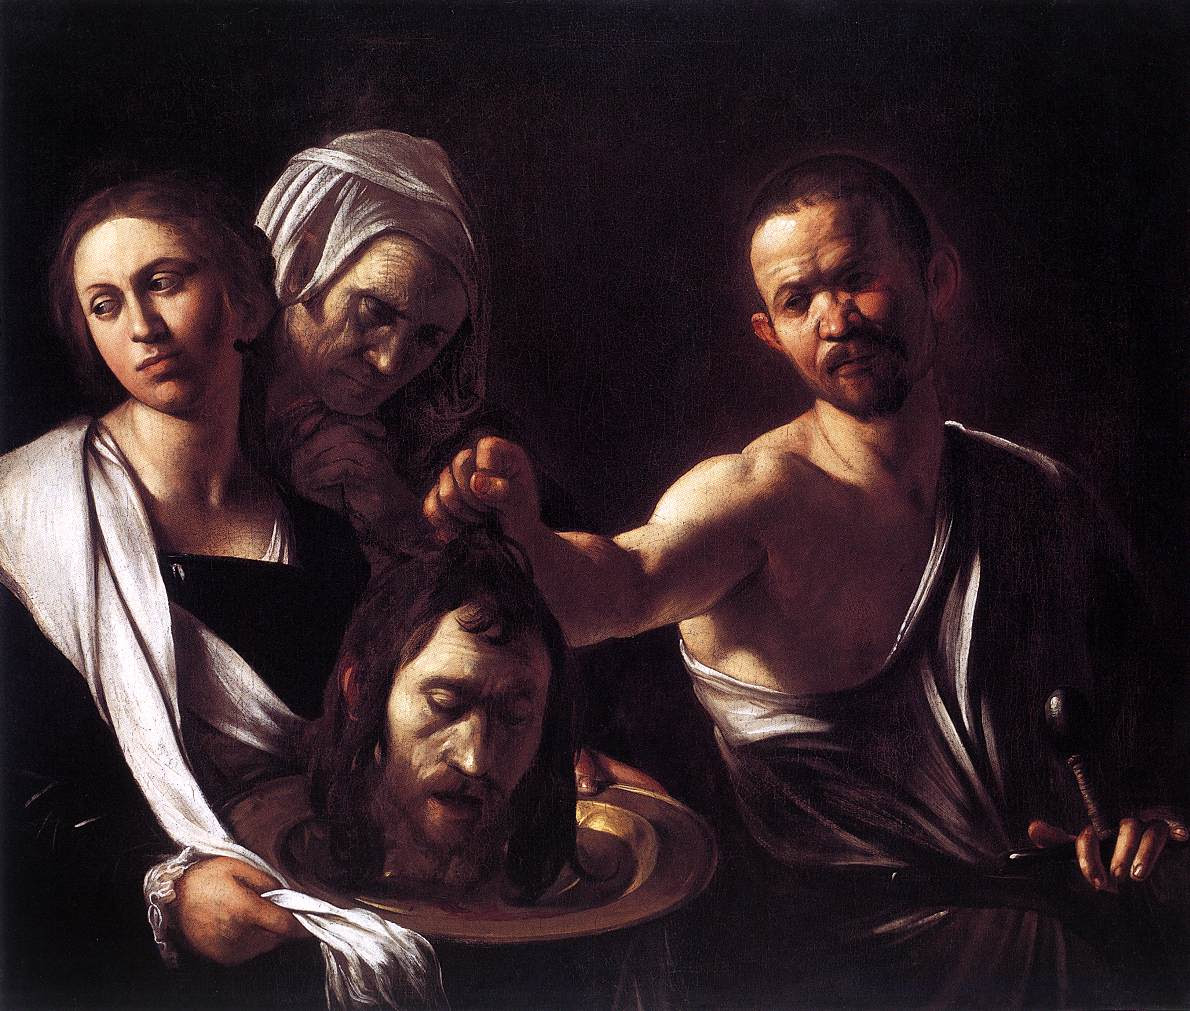 http://allart.biz/up/photos/album/B-C/Caravaggio/michelangelo_caravaggio_49_salome_with_the_head_of_john_the_baptist_london.jpg